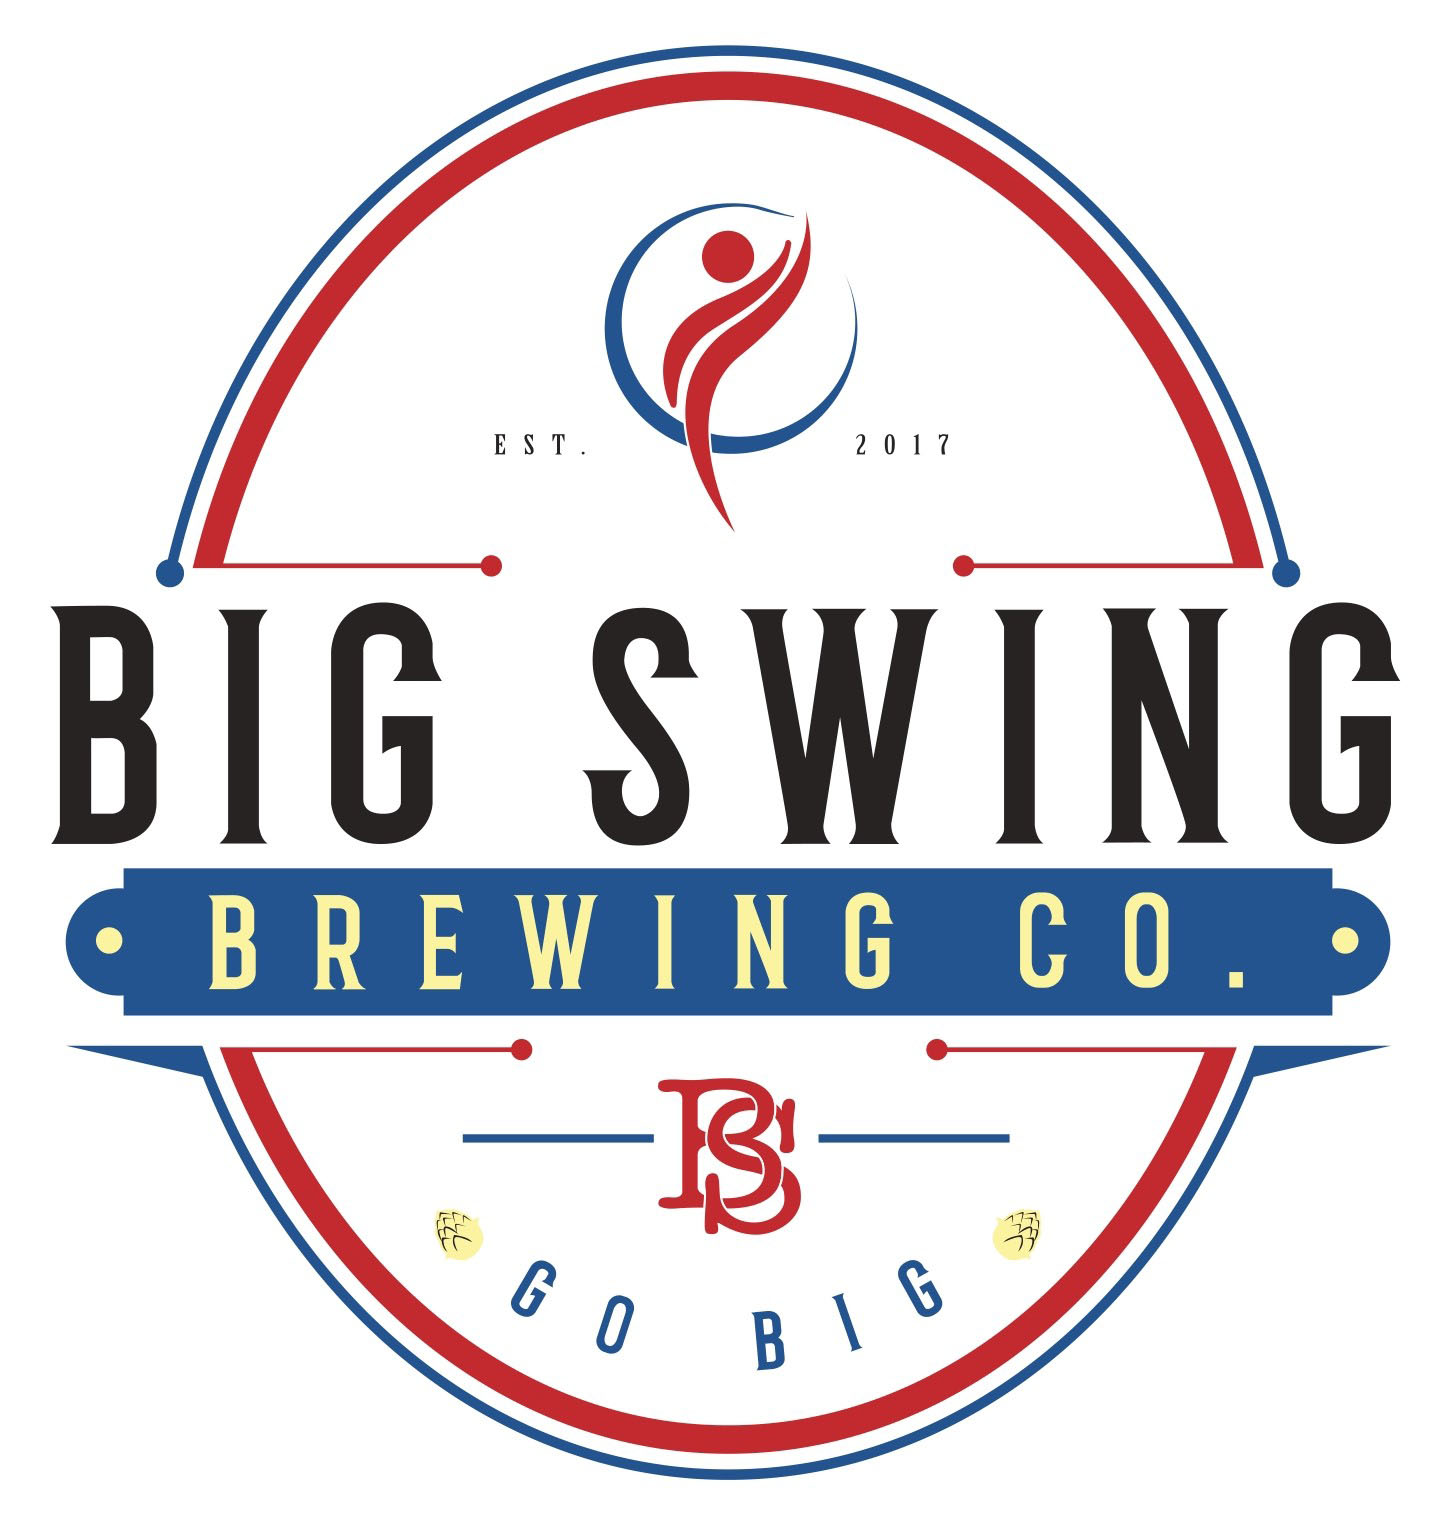 Big Swing Brewing Co.